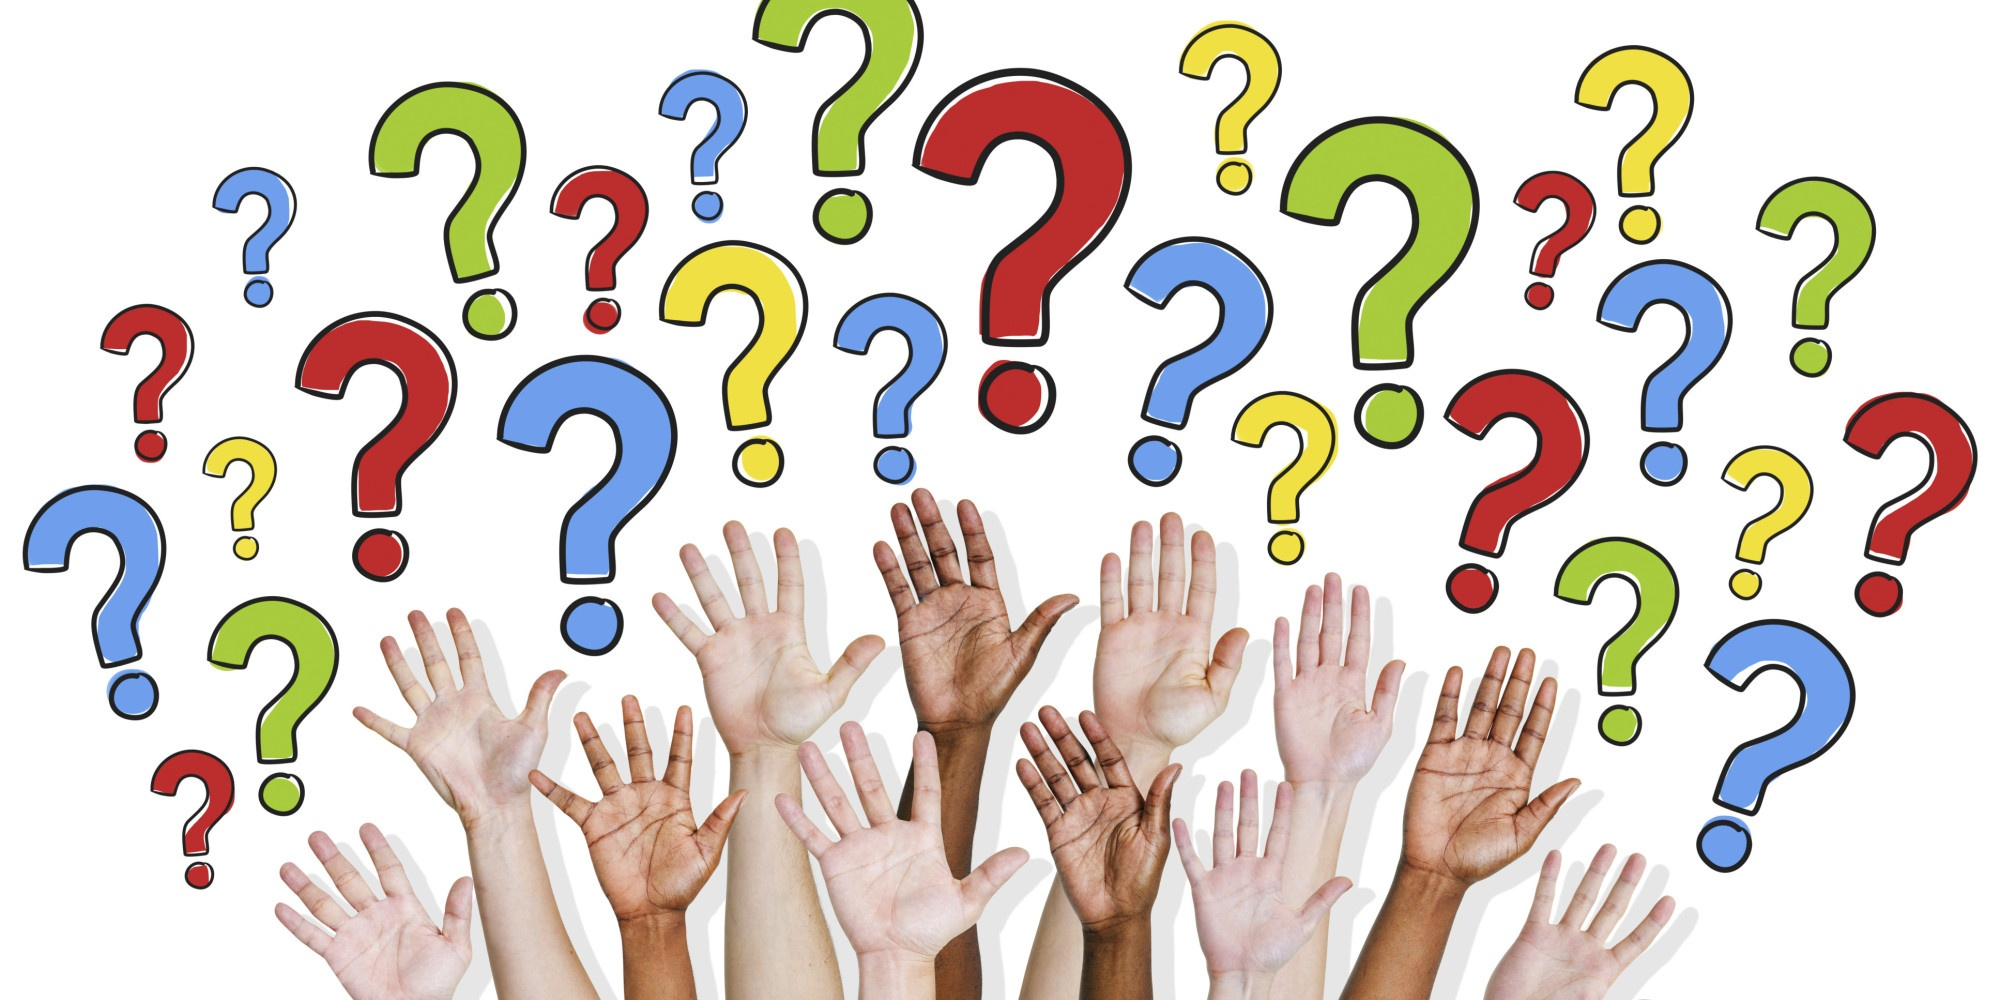 hands up asking questions